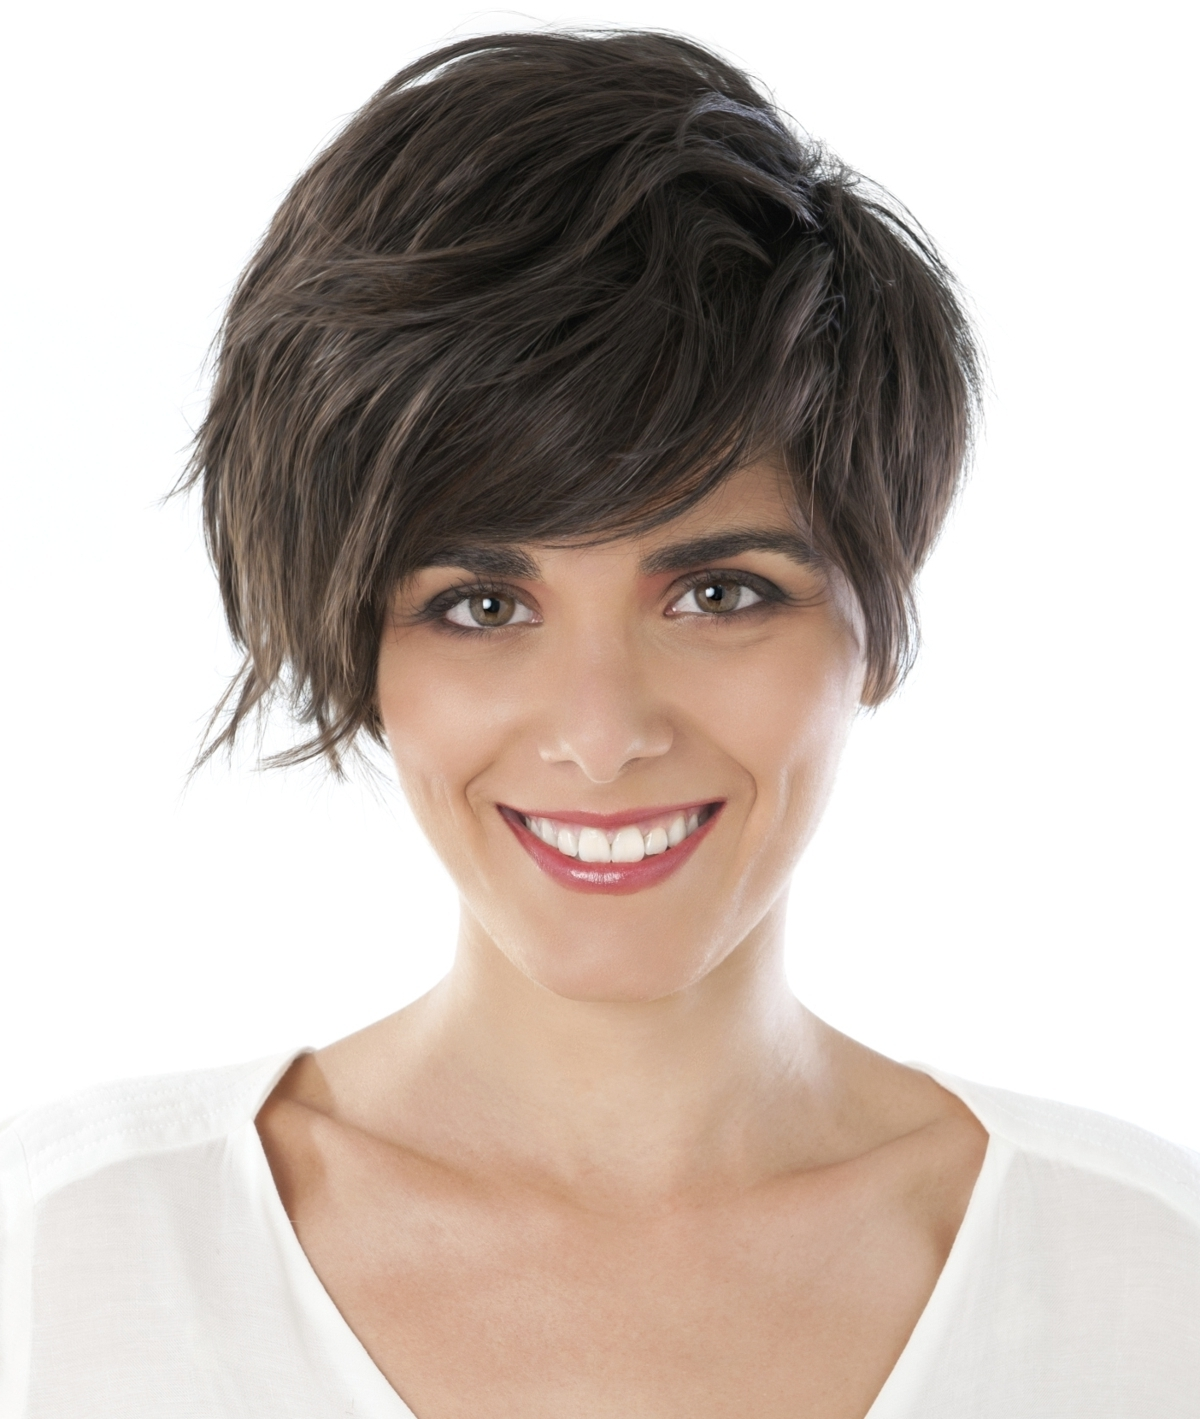 Short Hairstyles For Heart Shaped Faces That Don't Skimp On Style Intended For Most Recent Pixie Hairstyles For Heart Shaped Face (View 13 of 15)